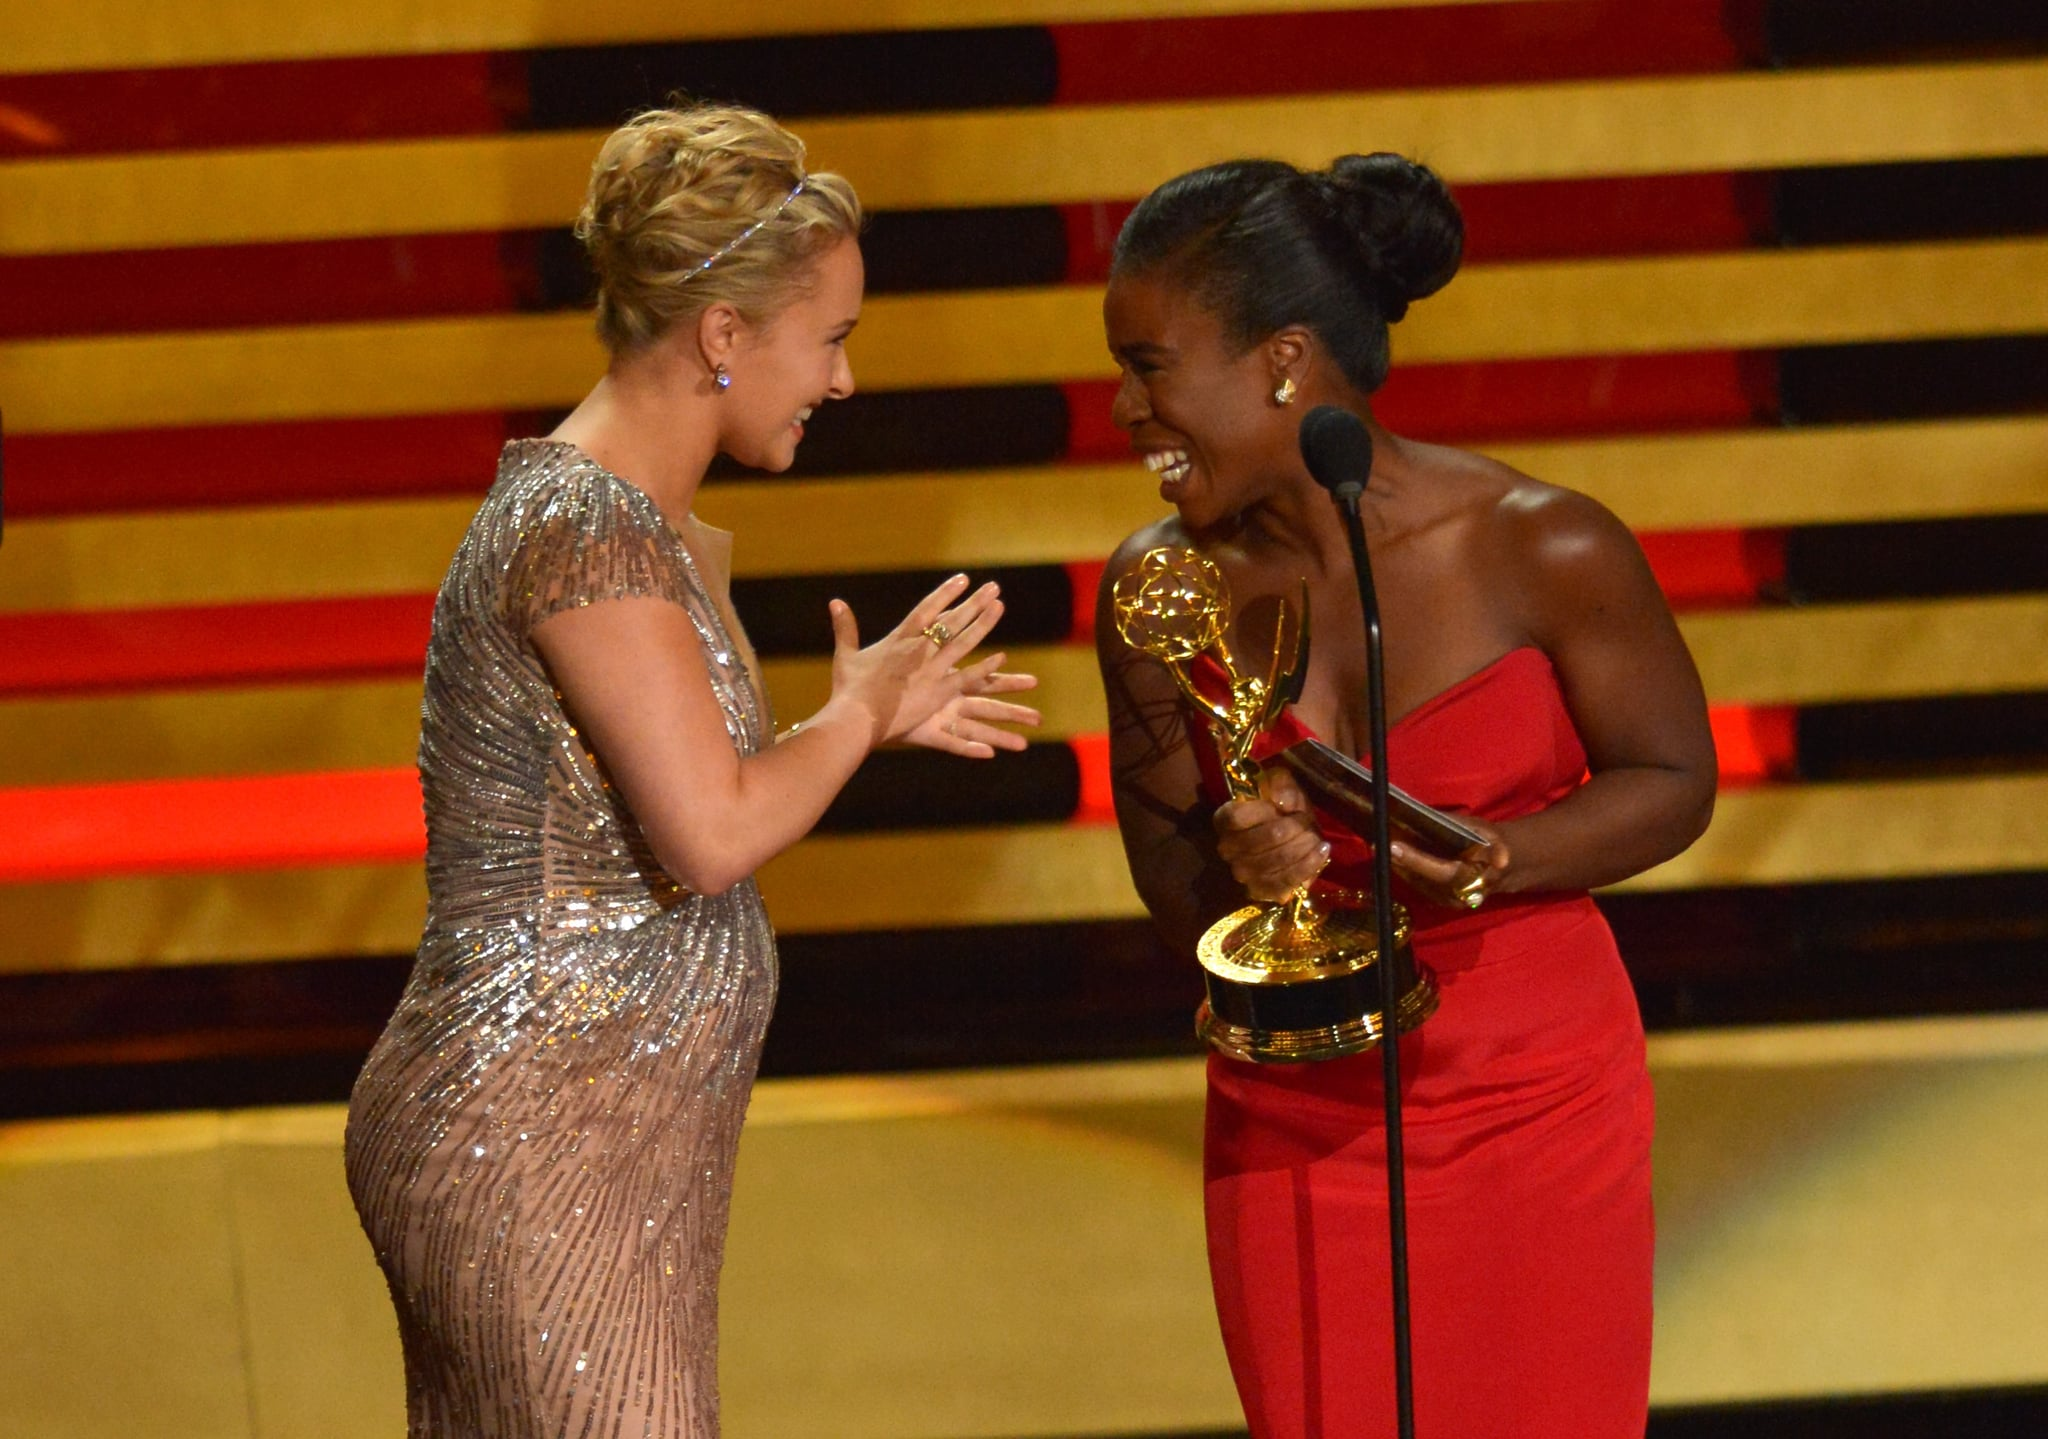 Uzo Aduba and Hayden Panettiere joked on stage.